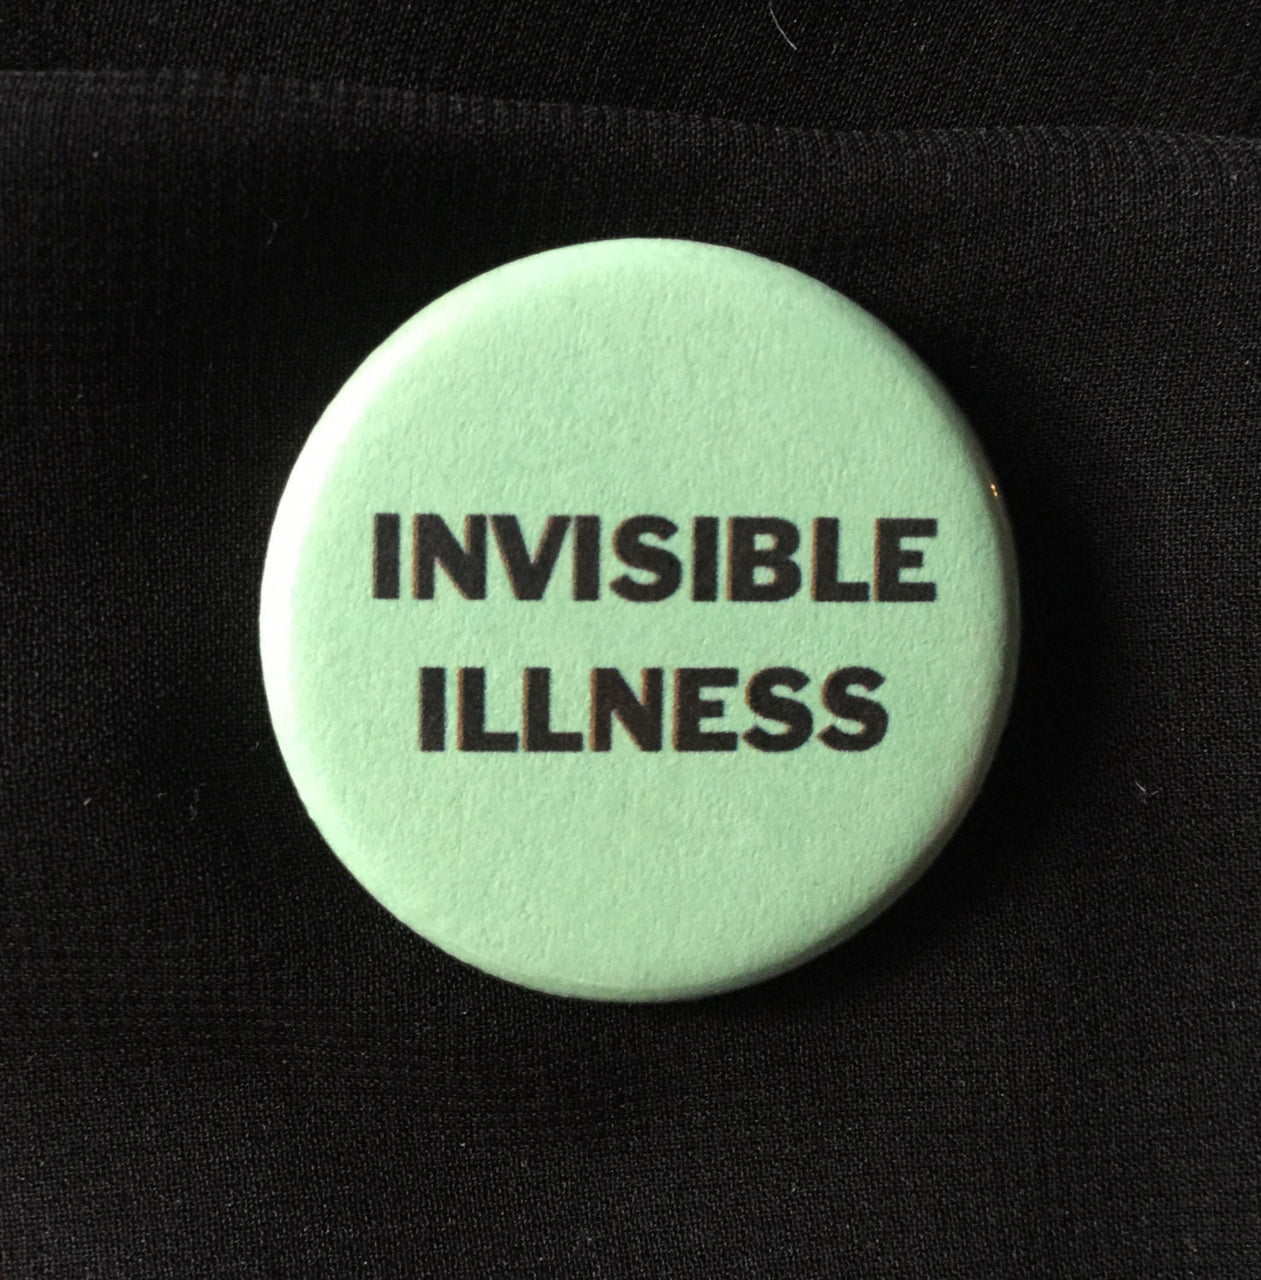 Invisible illness button - Radical Buttons